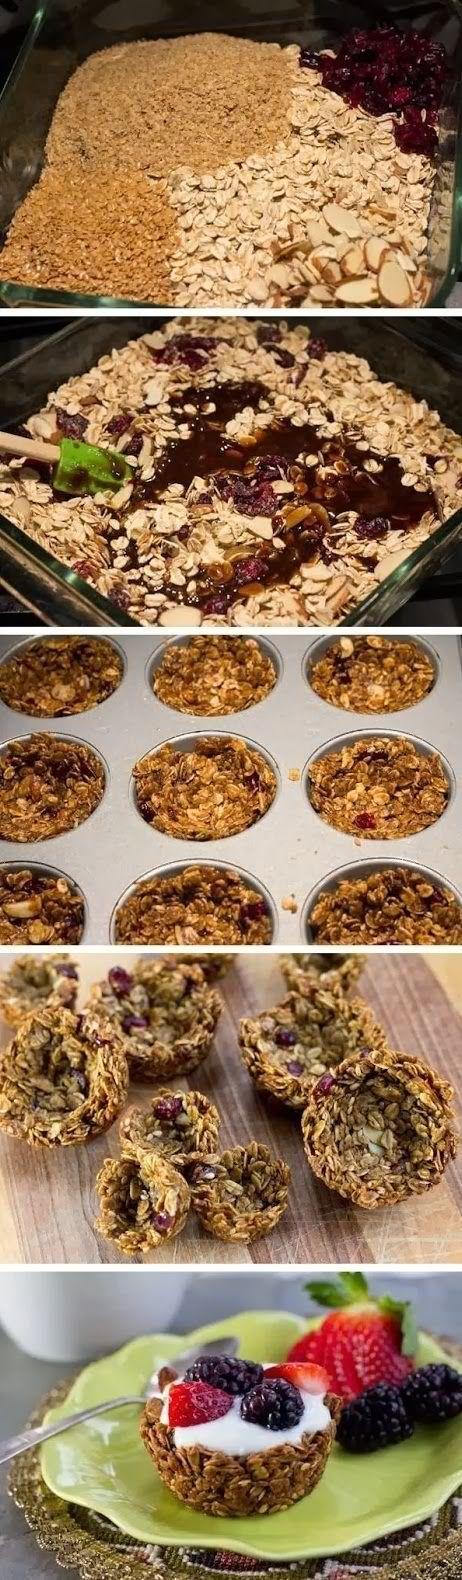 How to Make Granola Cups